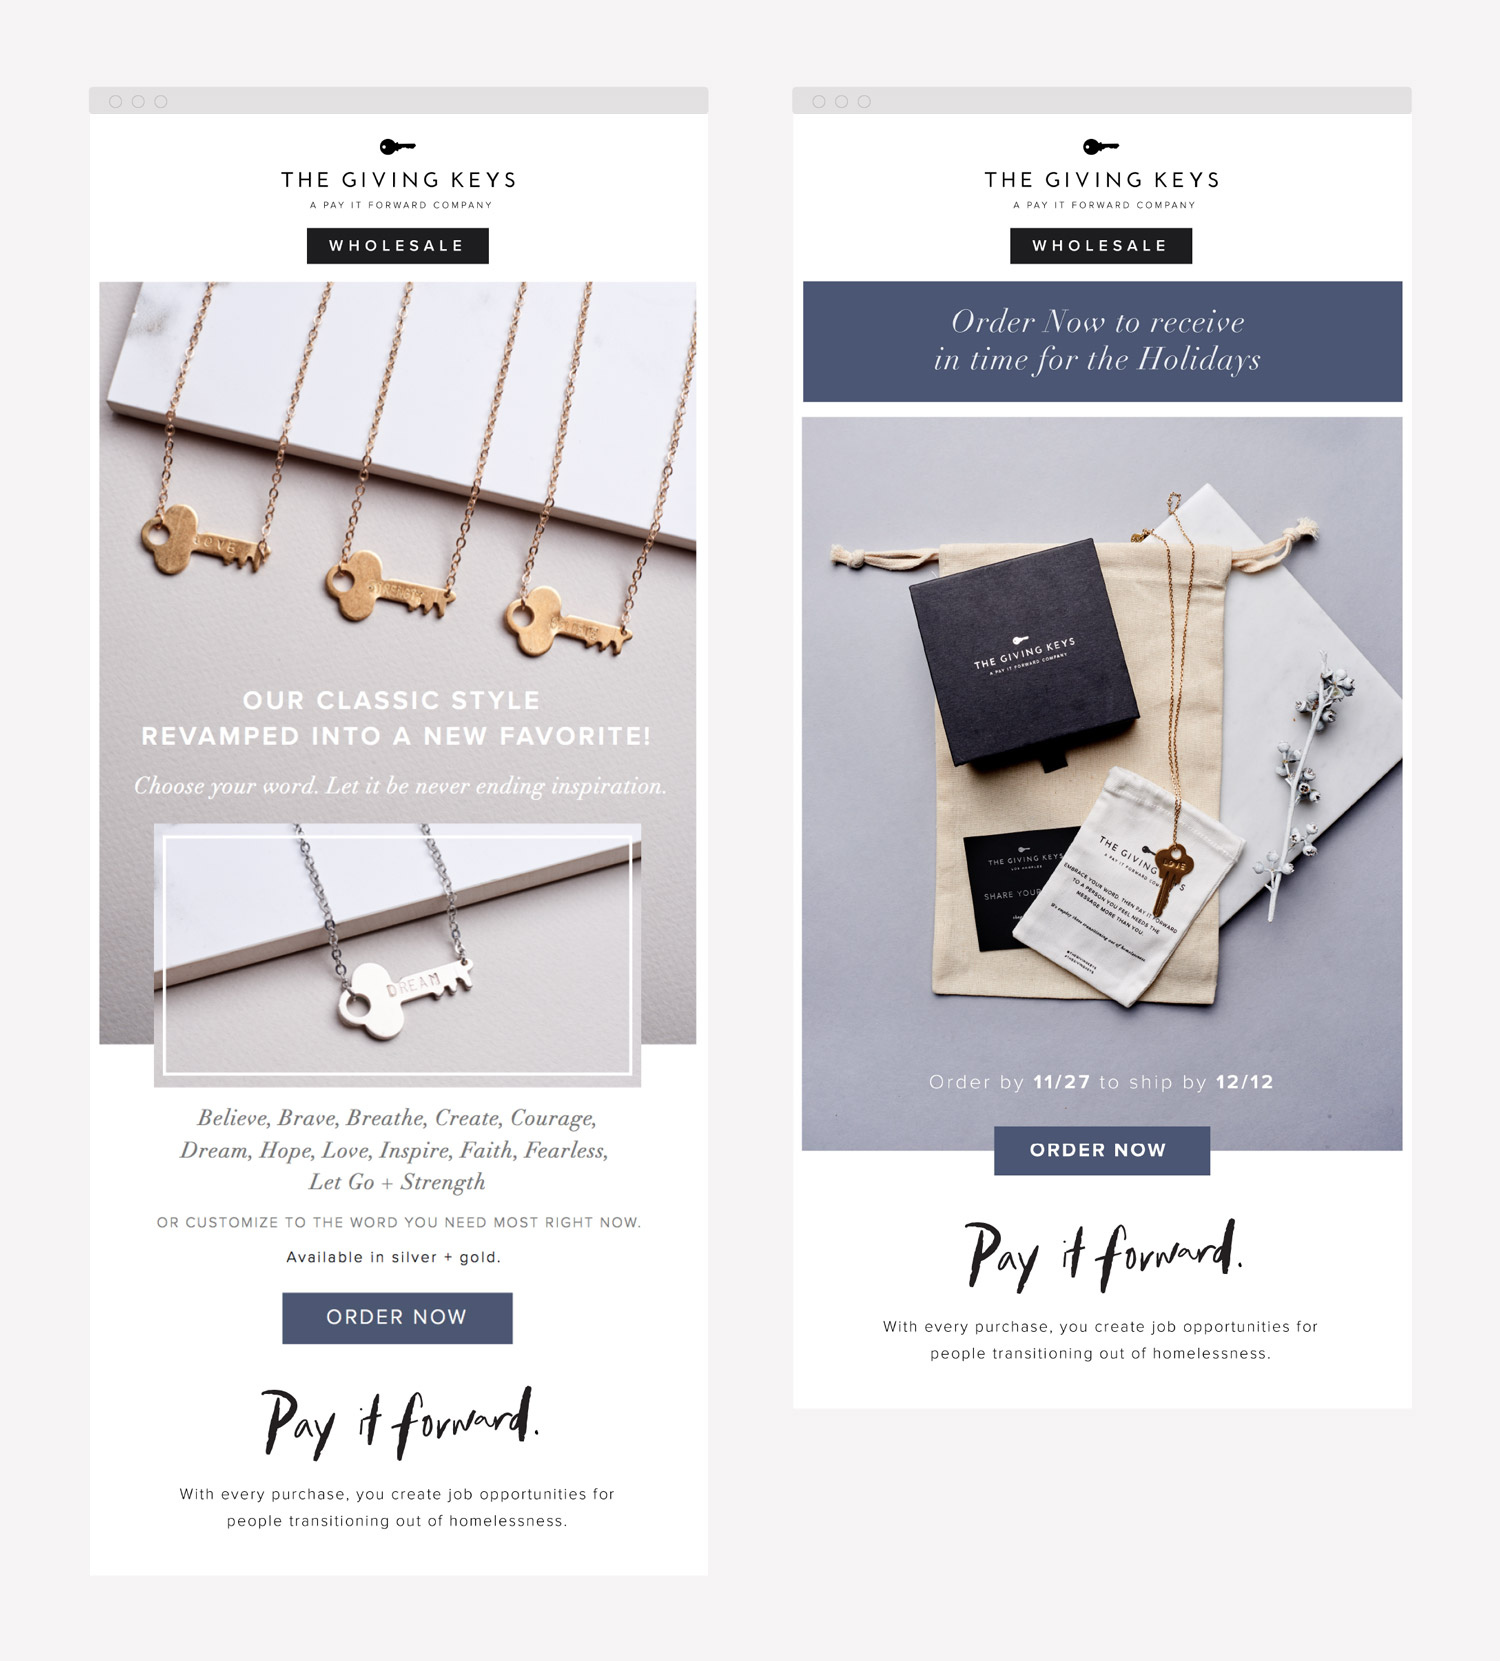 TheGivingKeys-Wholesale-Email-Designs-for-Jewelry-Brand.jpg